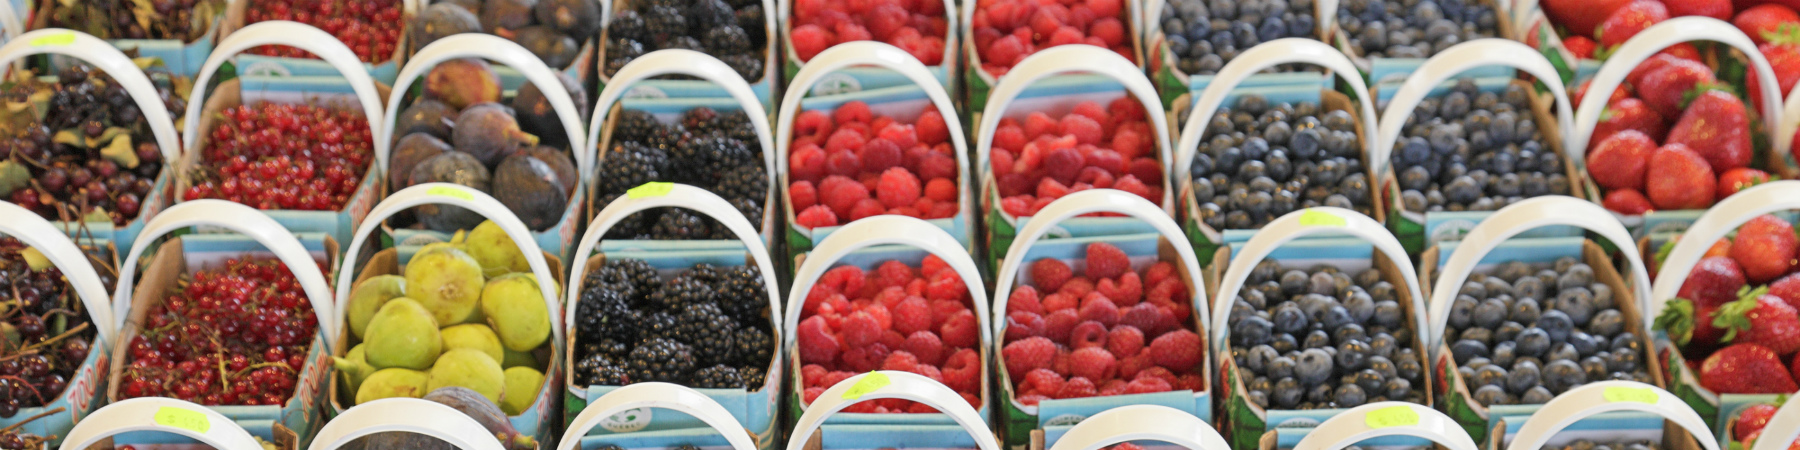 Baskets of berries at farmers market